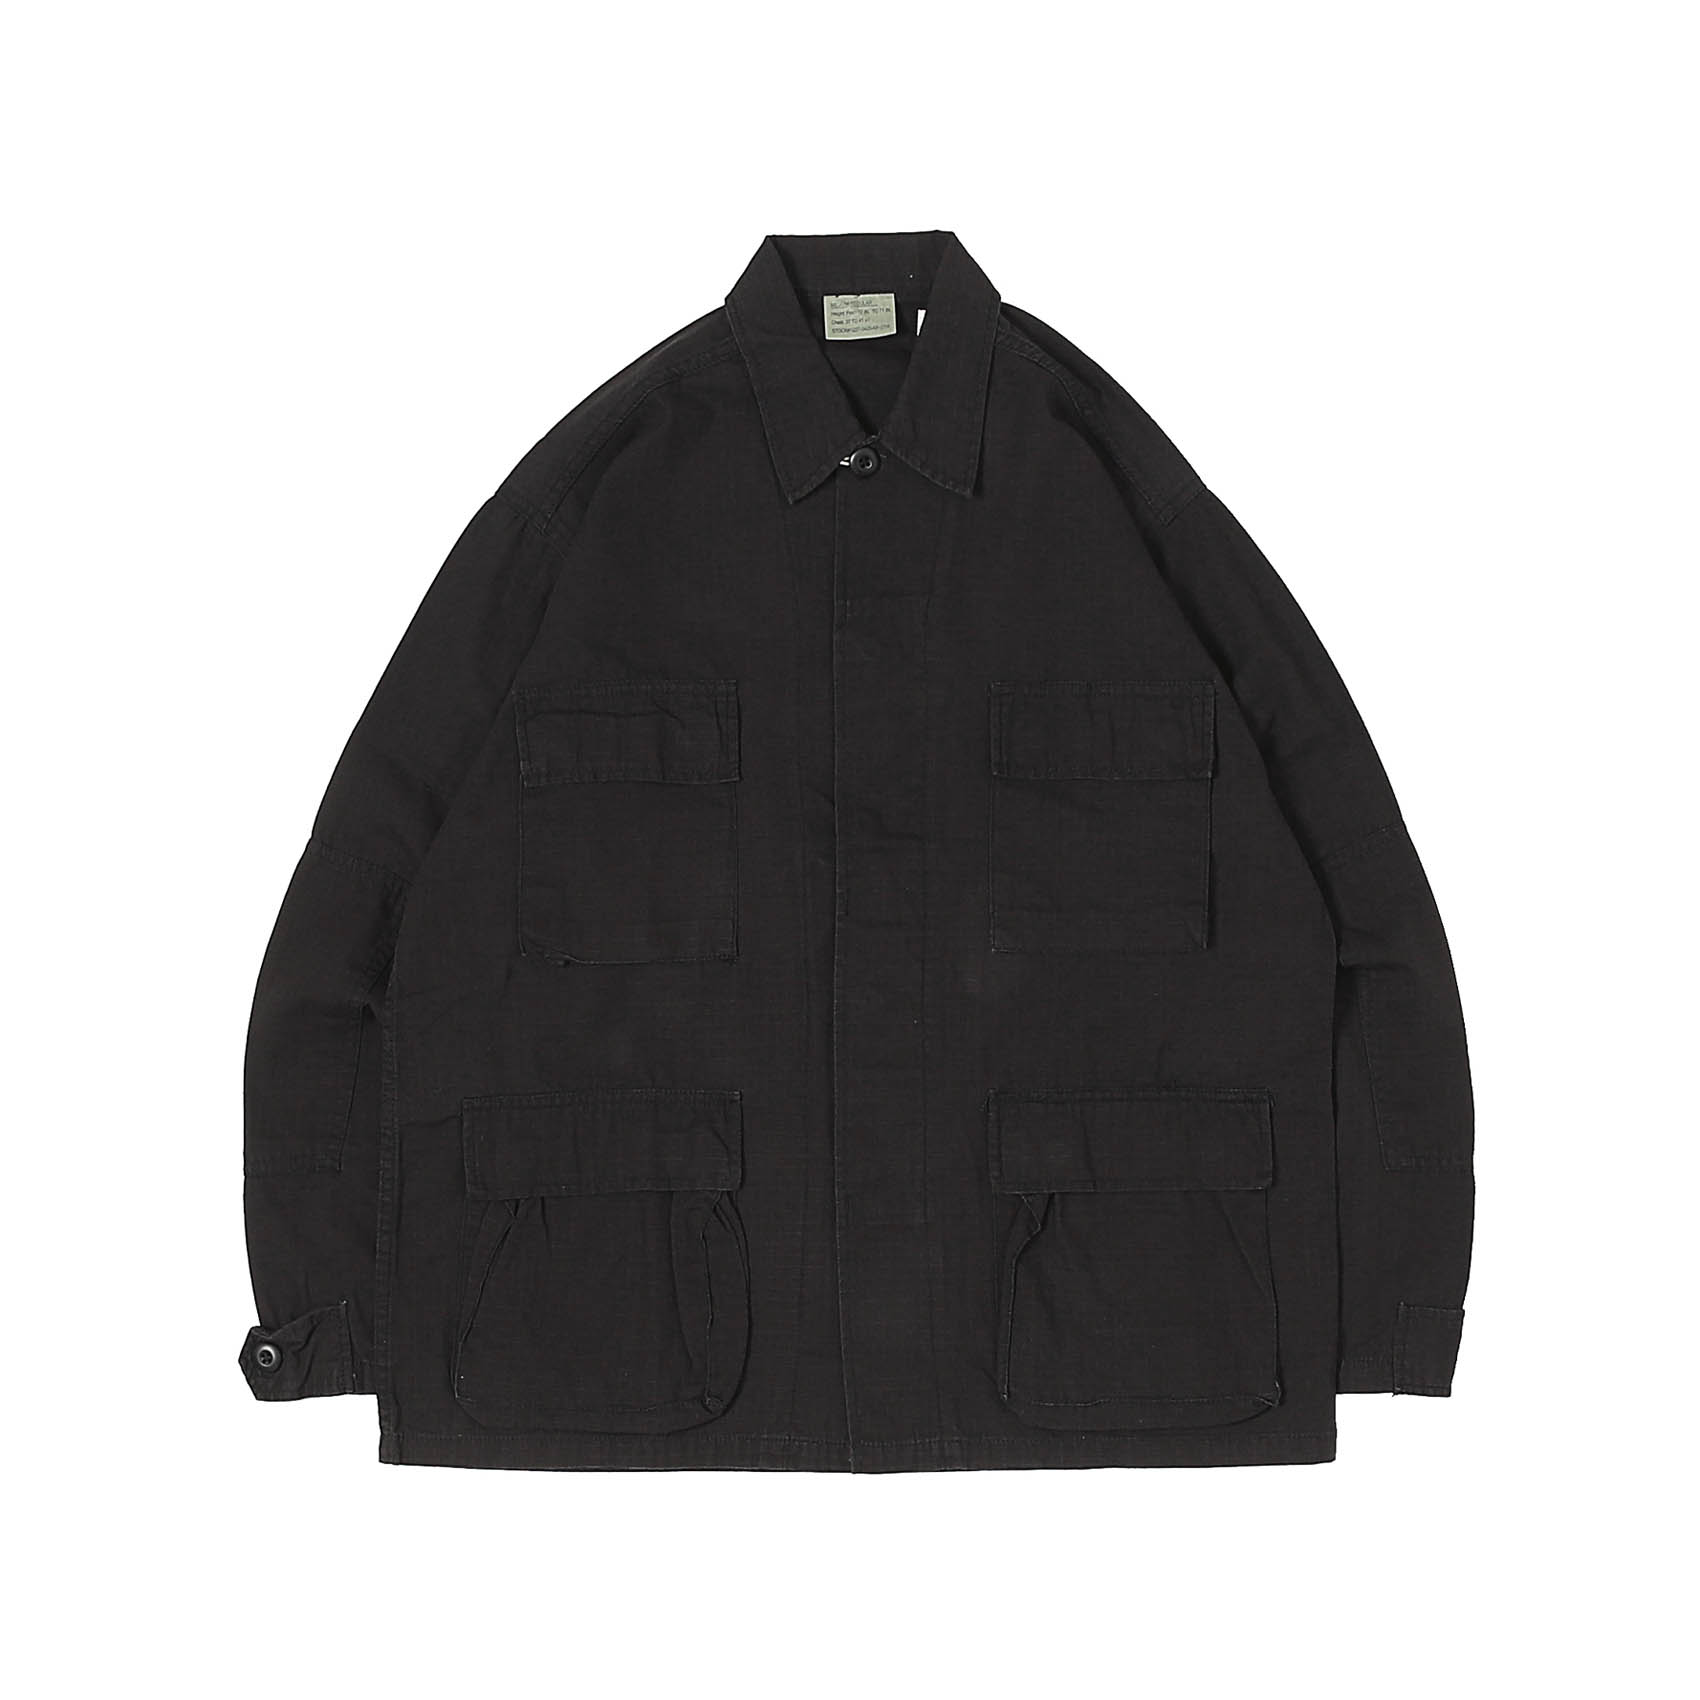 PRINTED BDU JACKET - BLACK